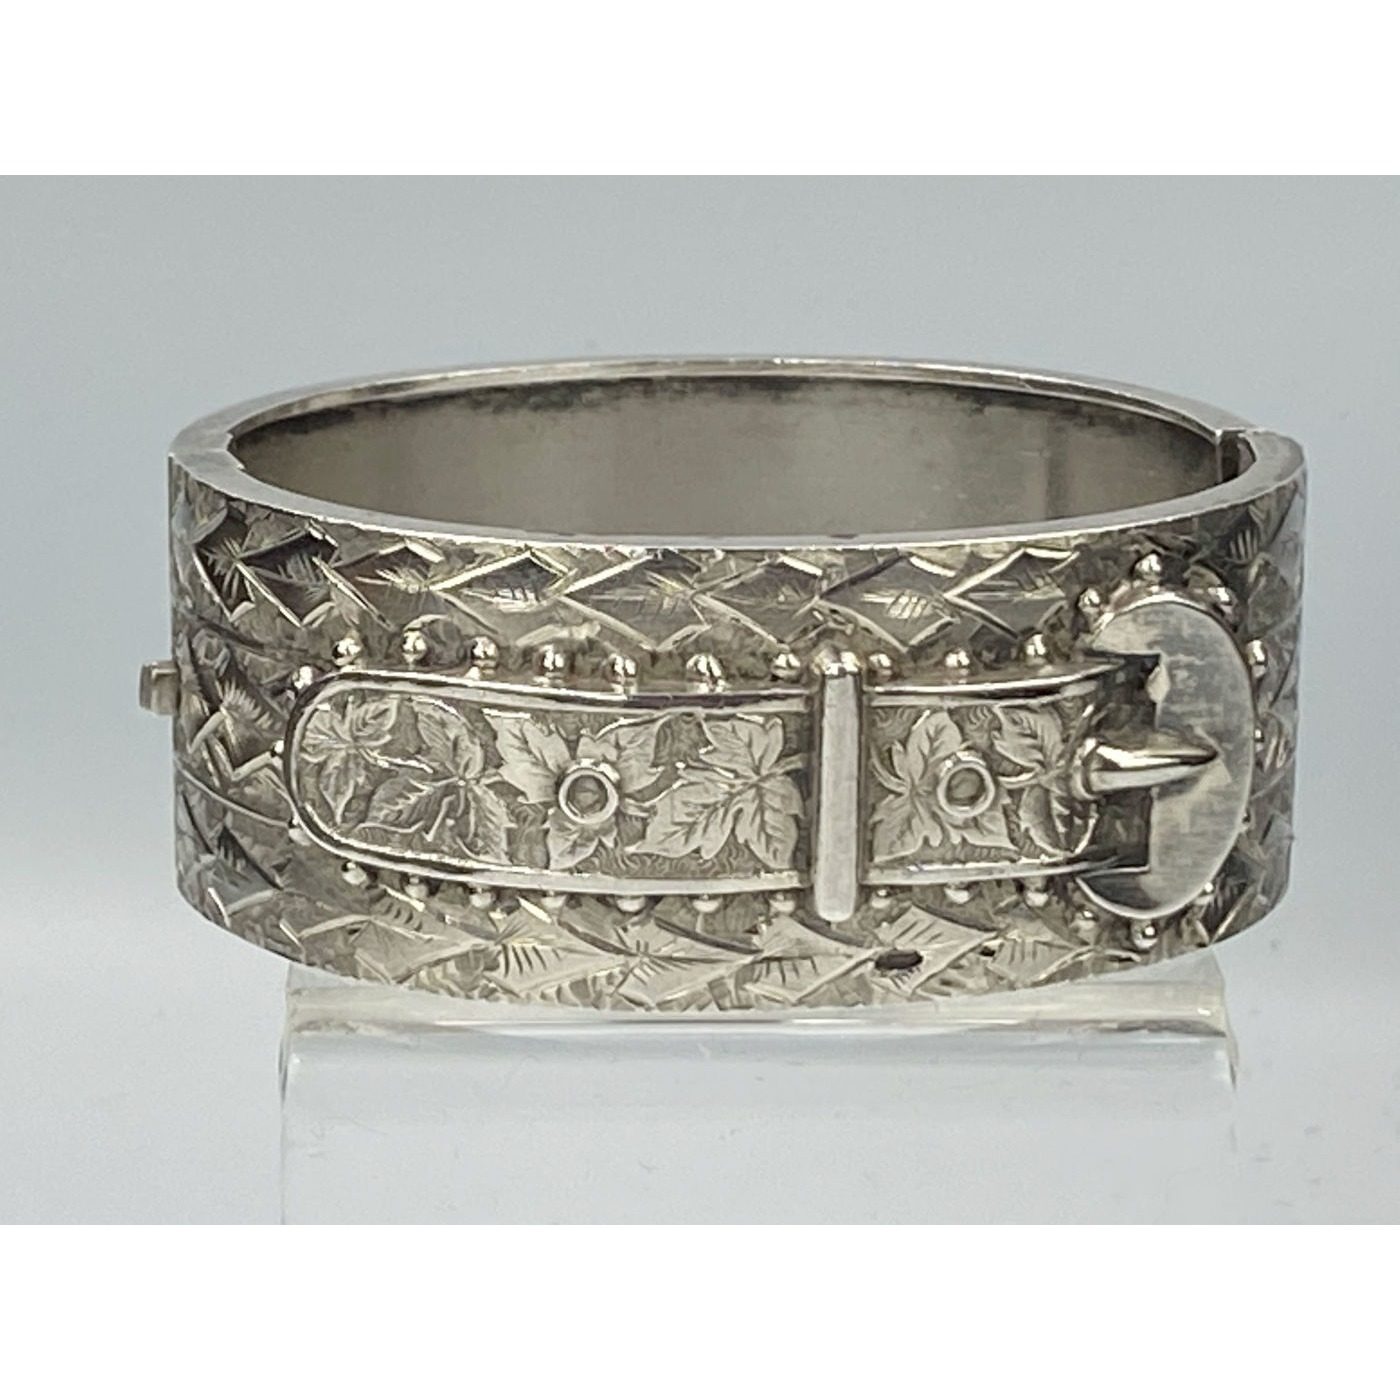 Fabulous English Silver Buckle Bangle with Ivy